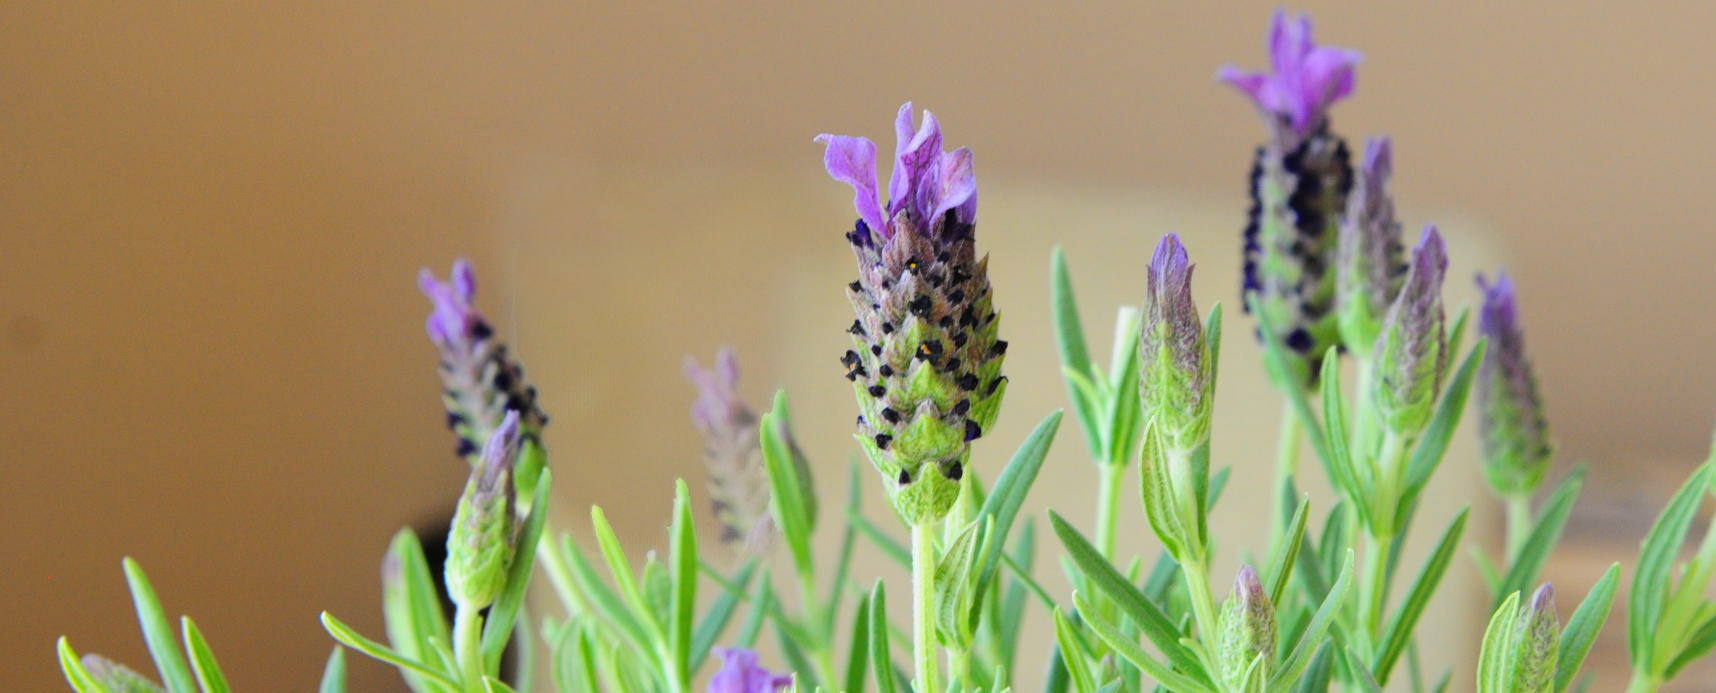 My starter plant for Lavender Container Garden